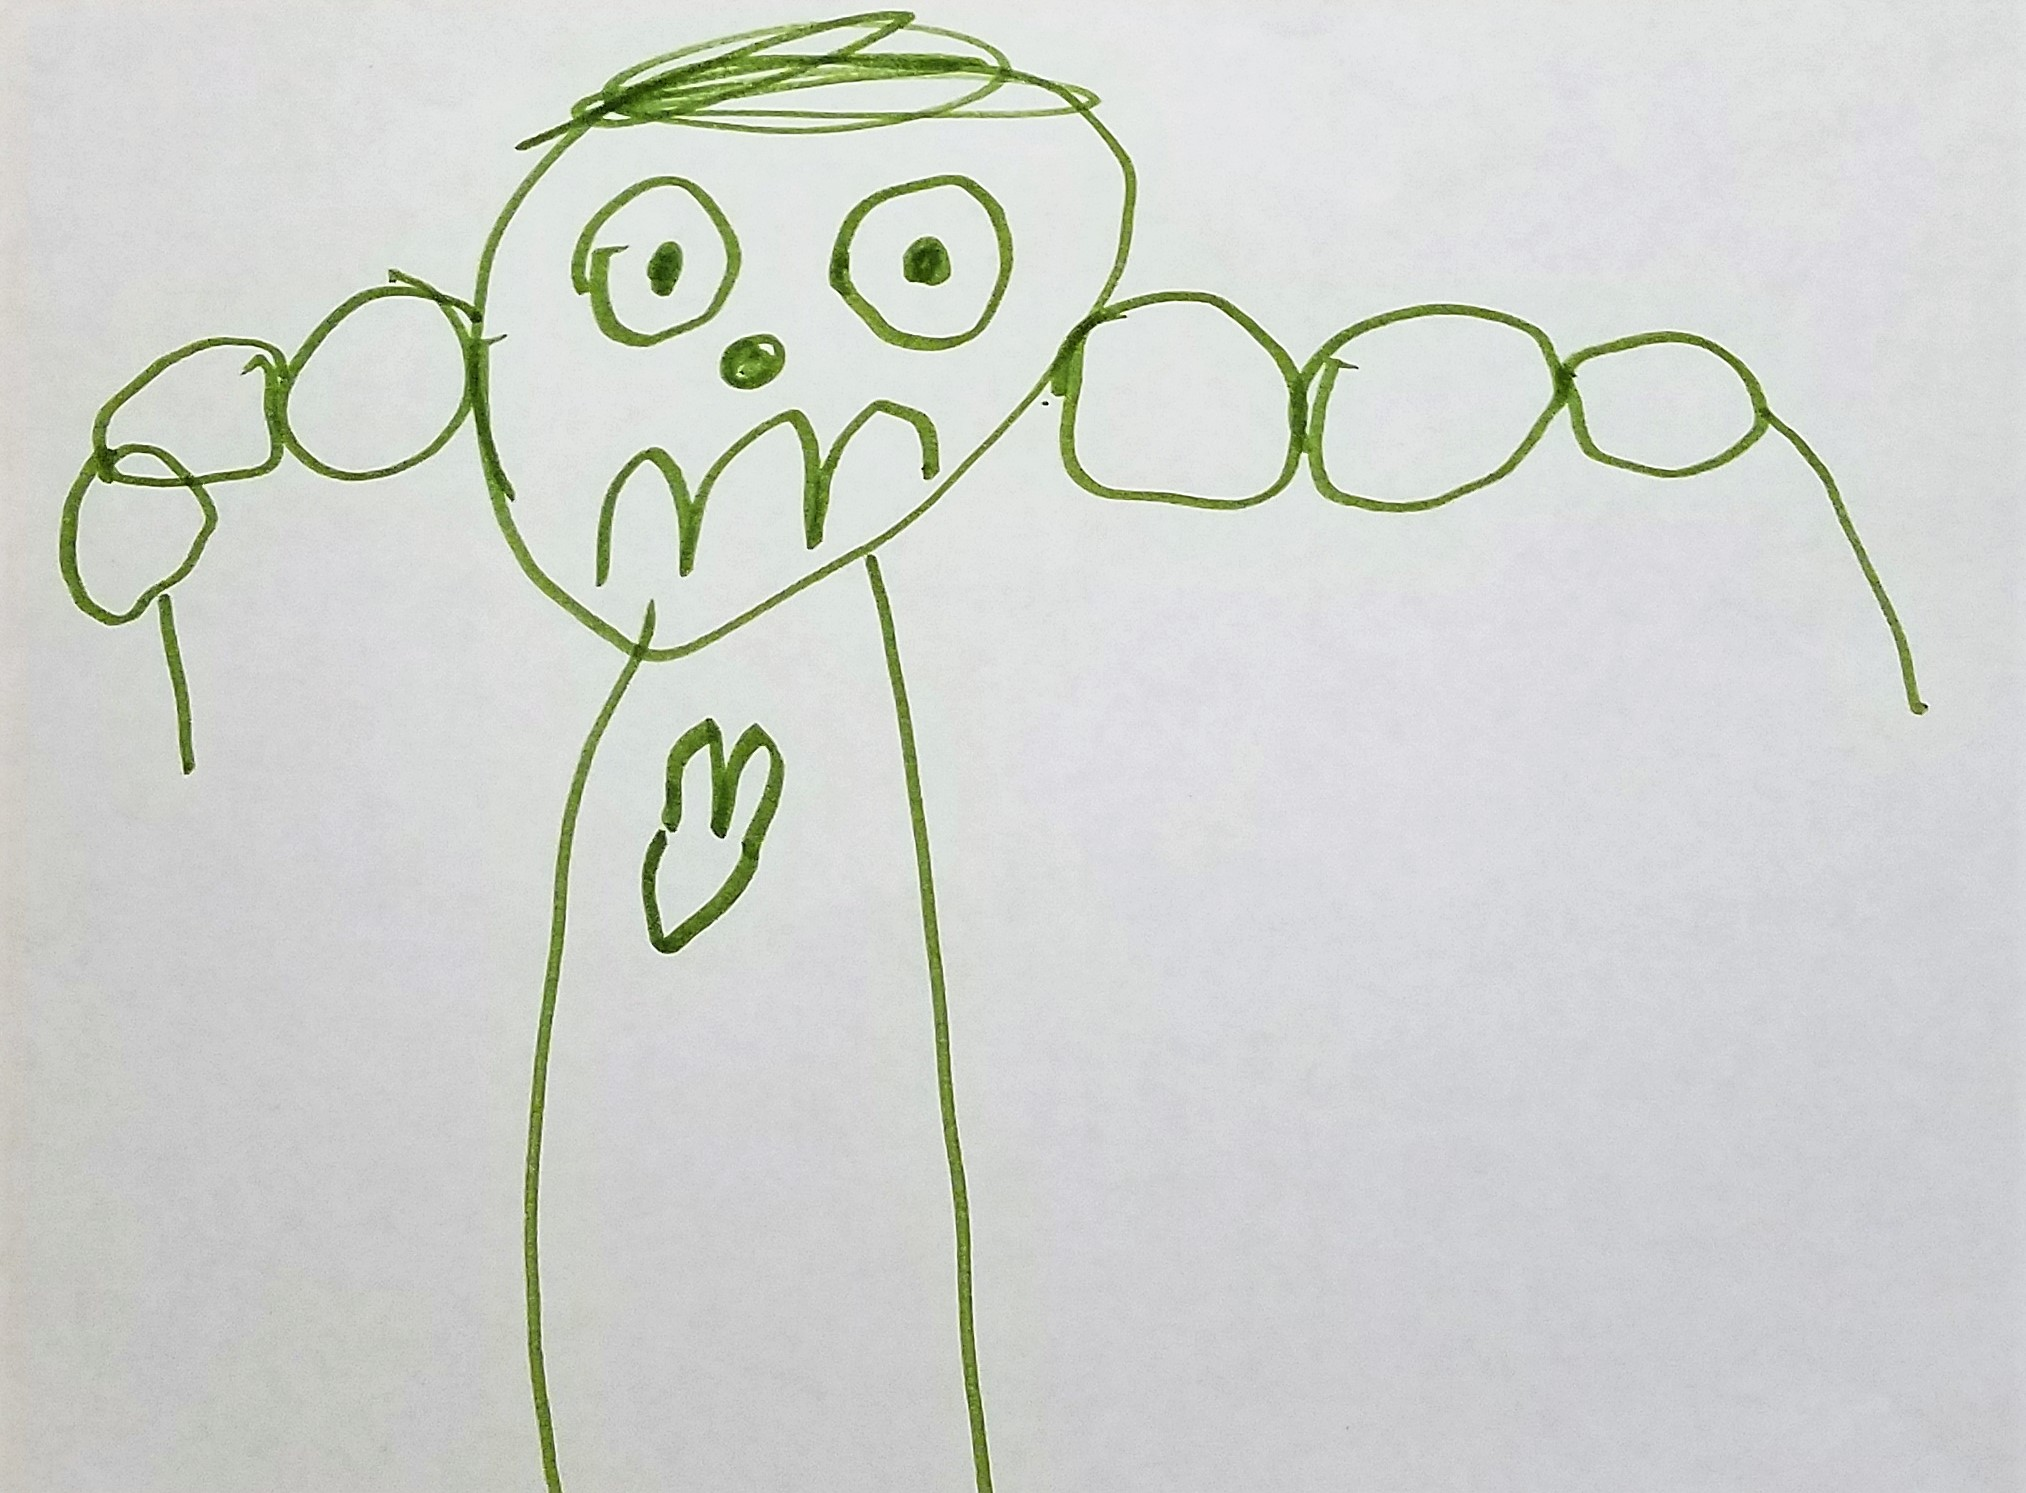 Picture compliments of my 4-year-old grandson, Barrett. It's his picture of God being our hero. : )